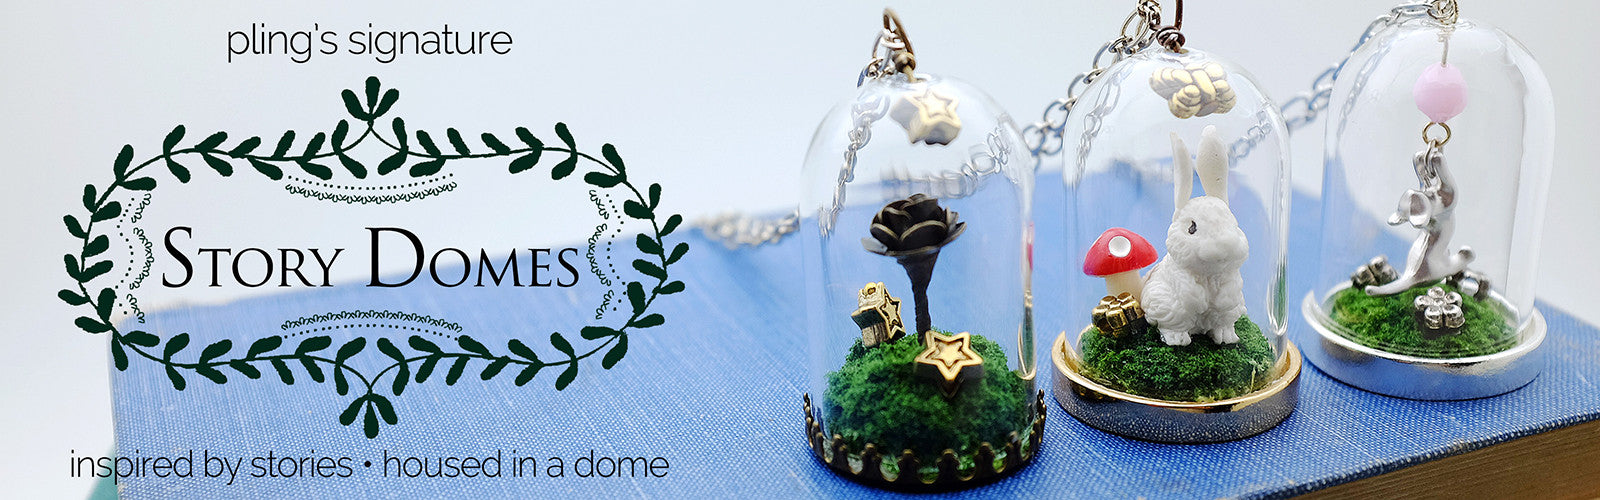 Story Domes by pling - glass apothecary necklaces, bell jar necklace, The Little Prince's Rose, Bunny in the Woods, Rabbit in the Woods